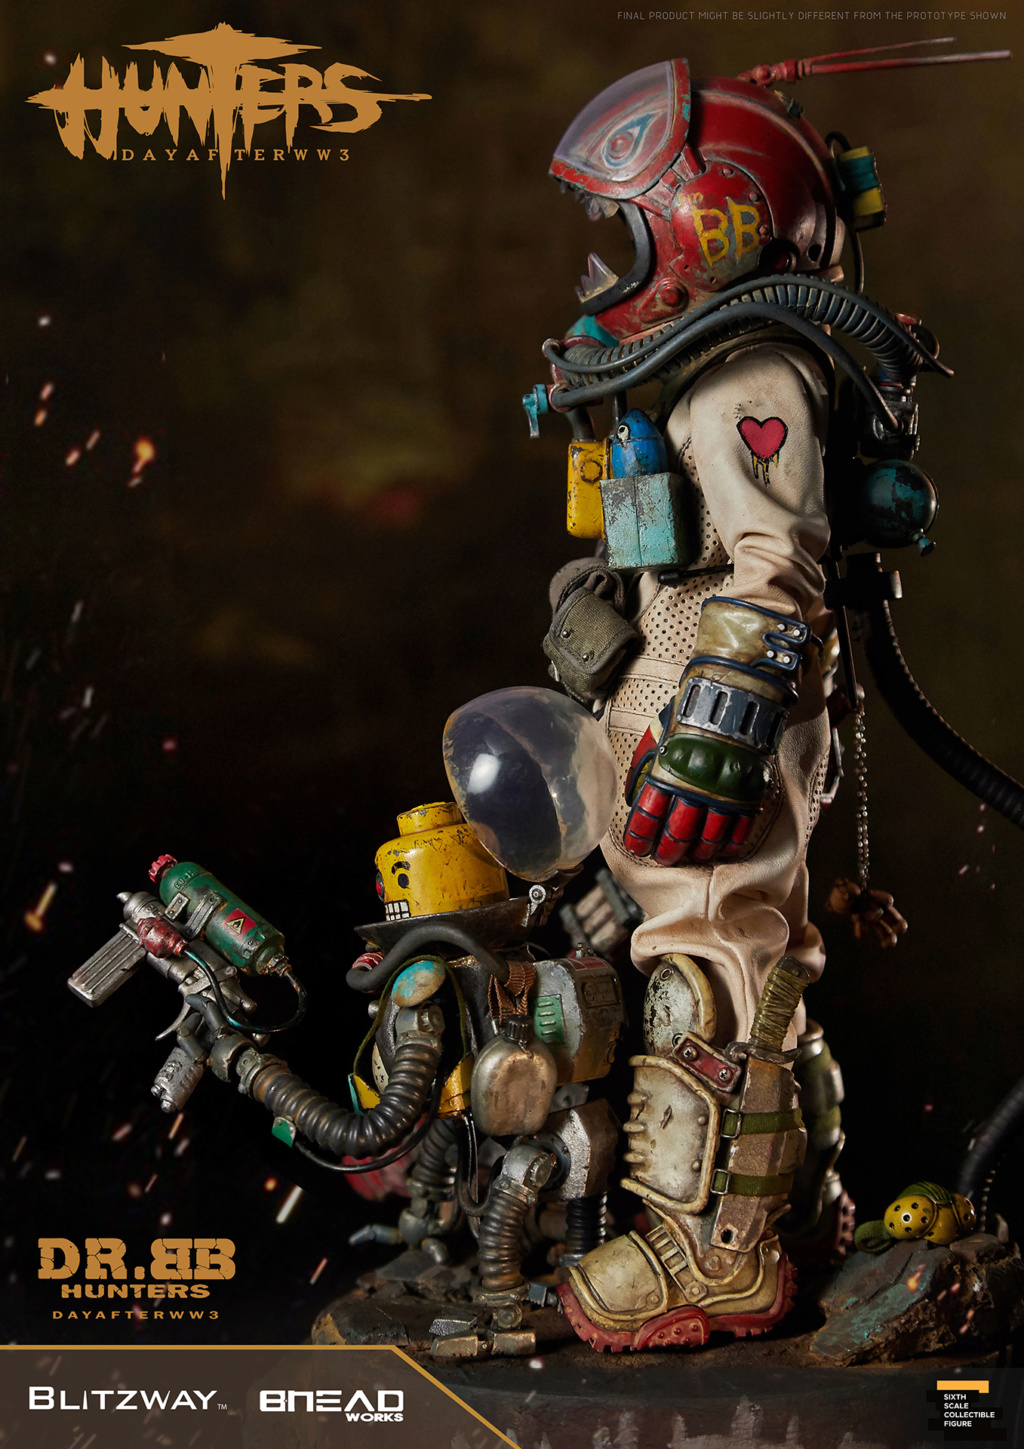 Robot - NEW PRODUCT: Blitzway: 1/6 scale HUNTERS : Day After WWlll: Dr.BB Action Figure 6302